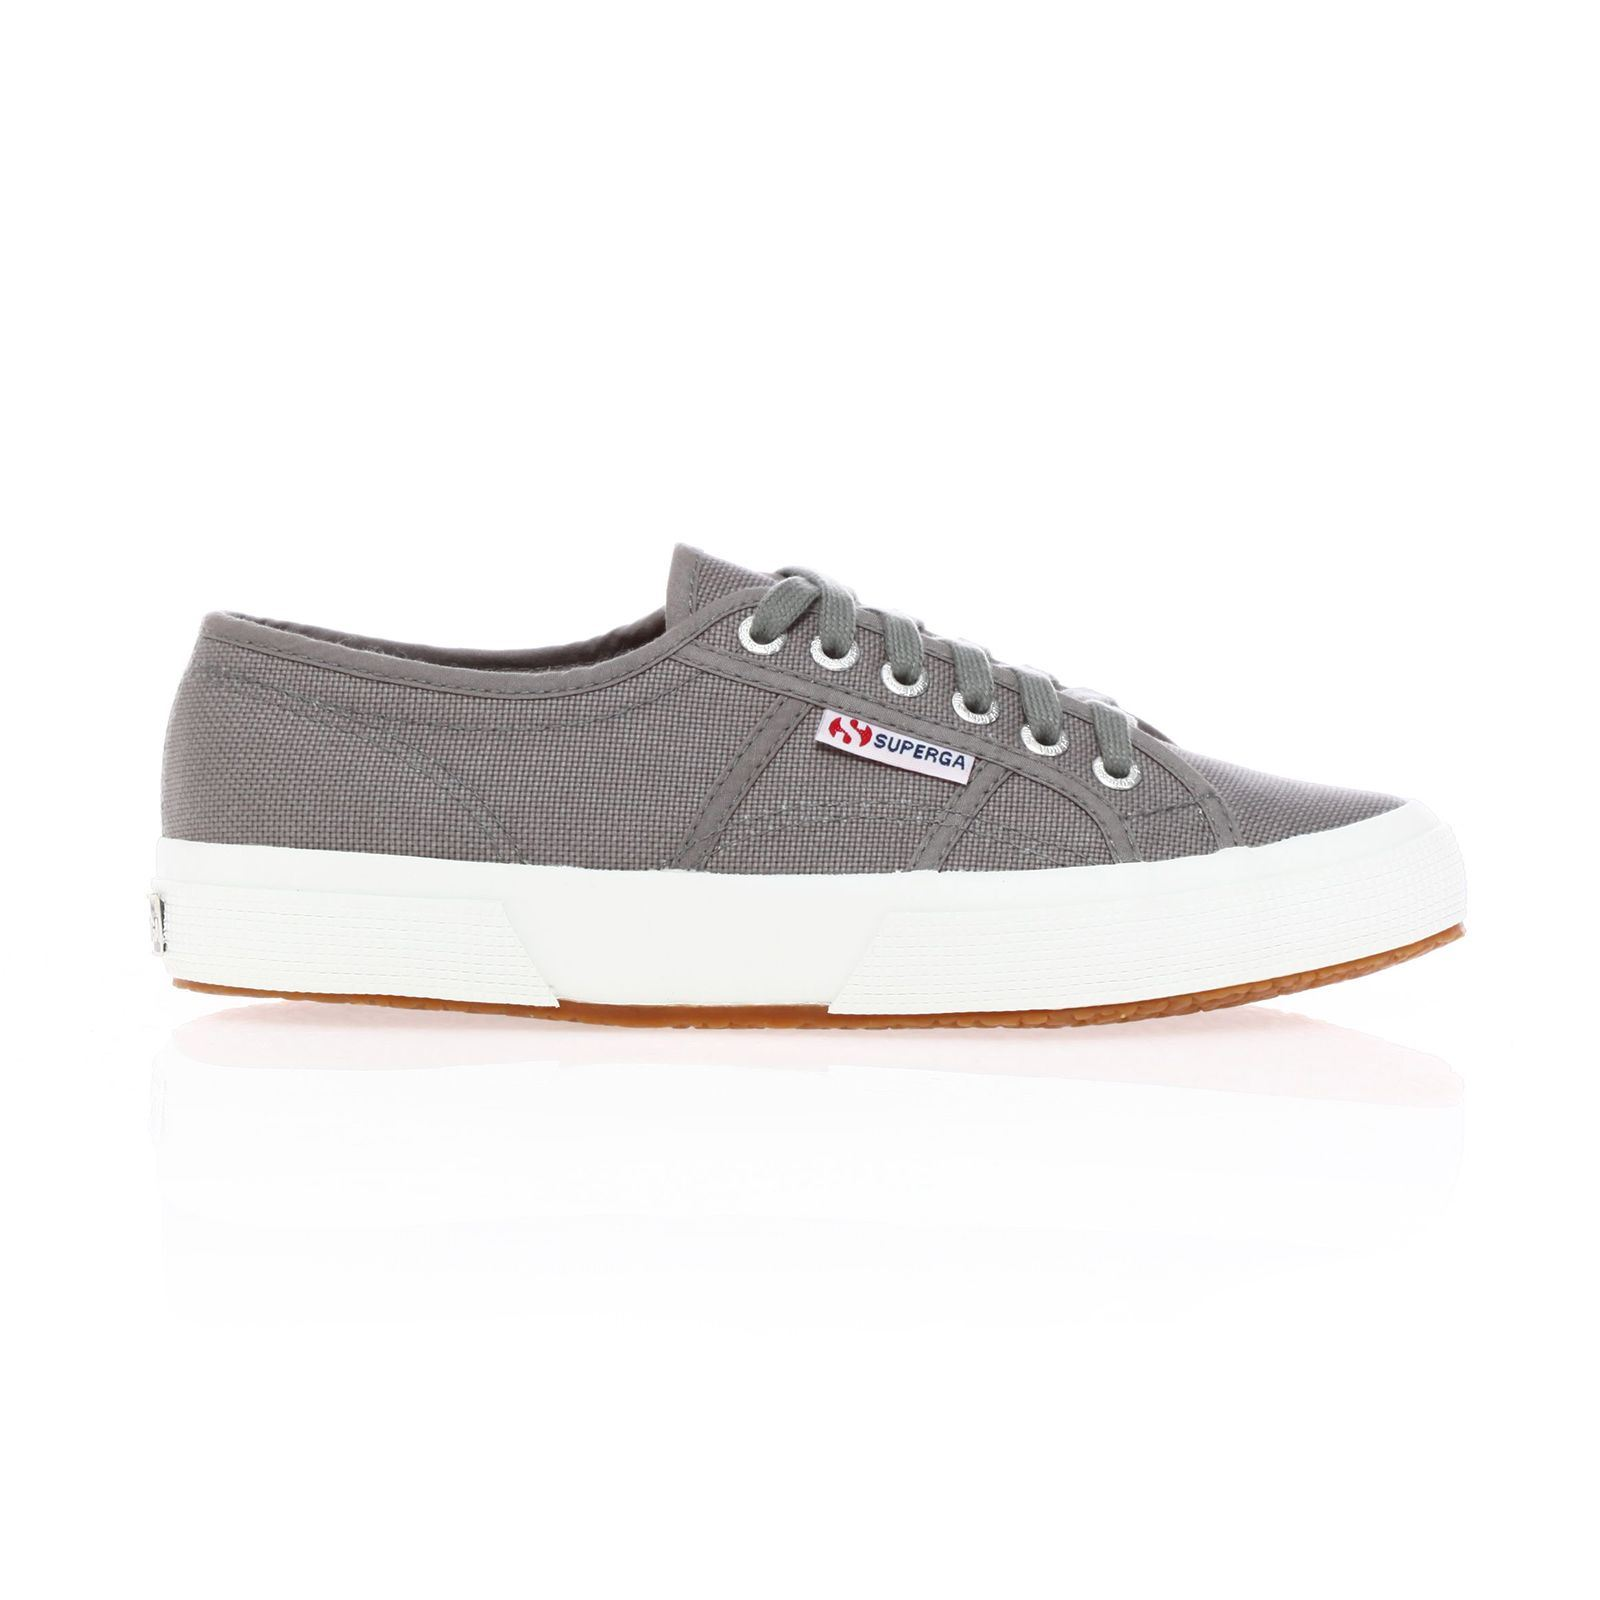 lowest price 987c1 b9053 Superga Cotu classic - Baskets Mode - grises Etiquette siglée sur le côté